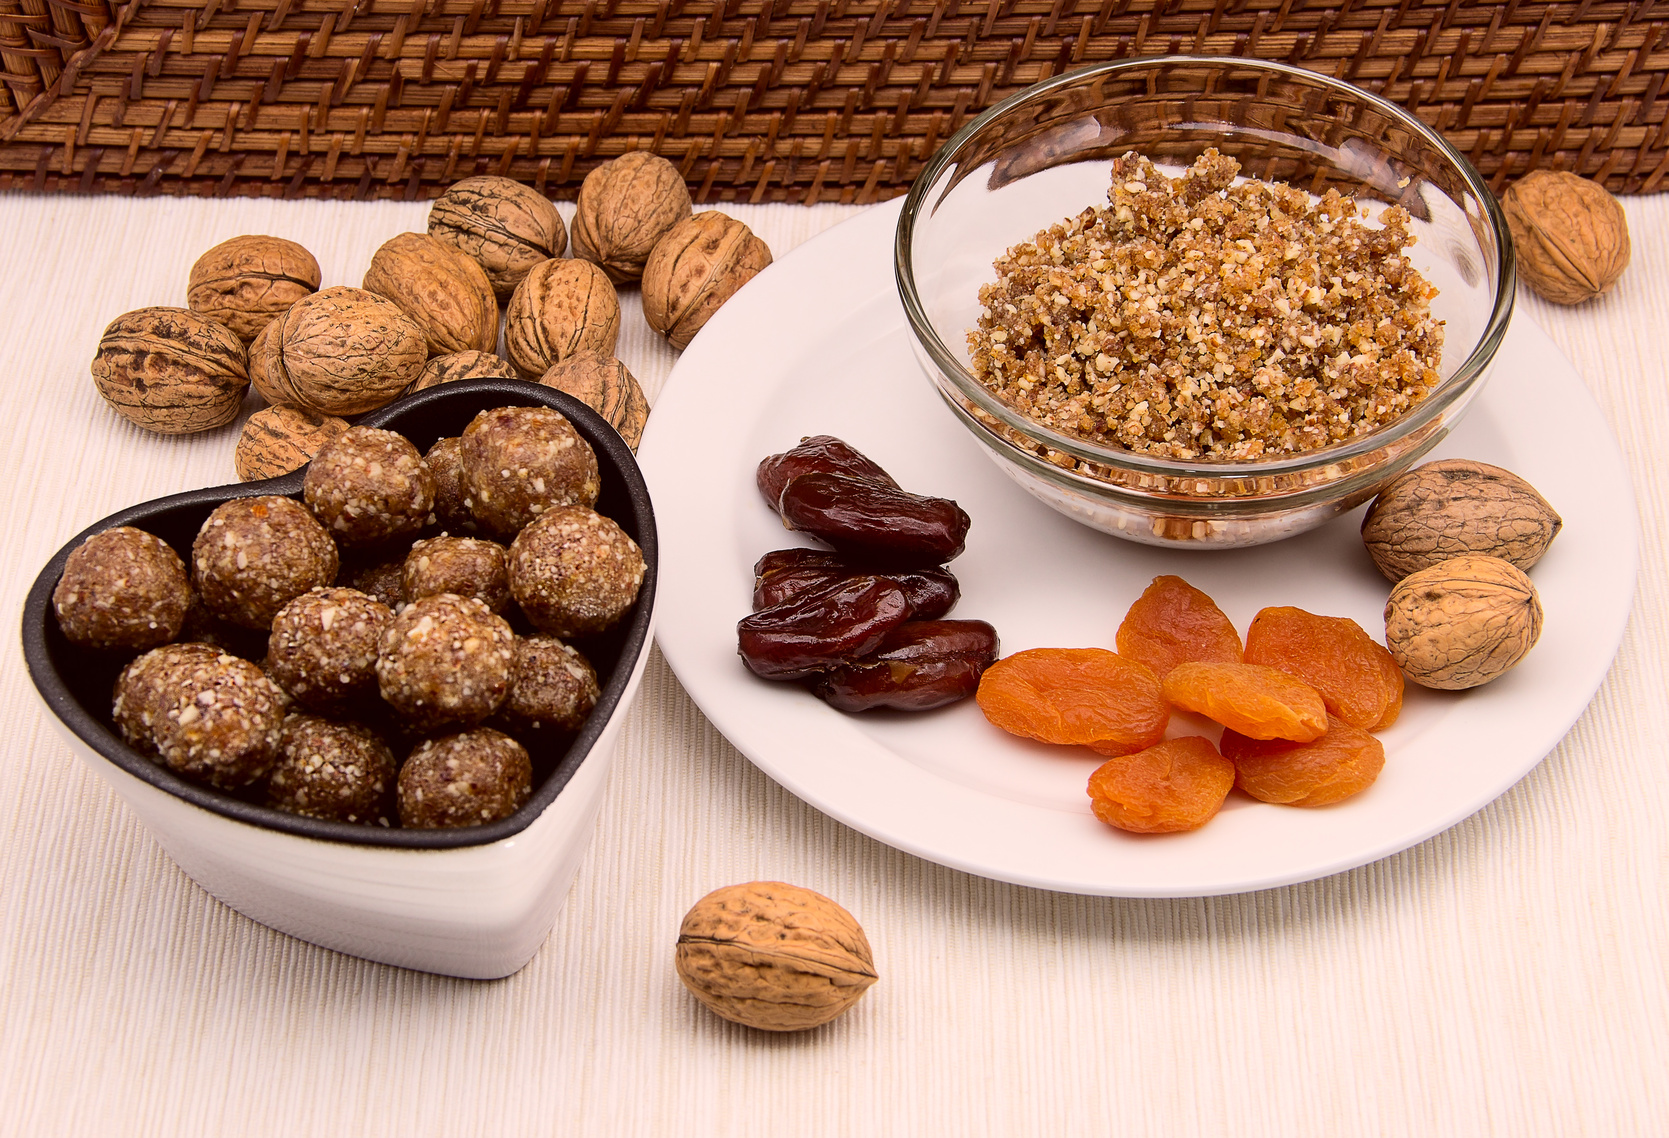 Walnuts, dates, apricots